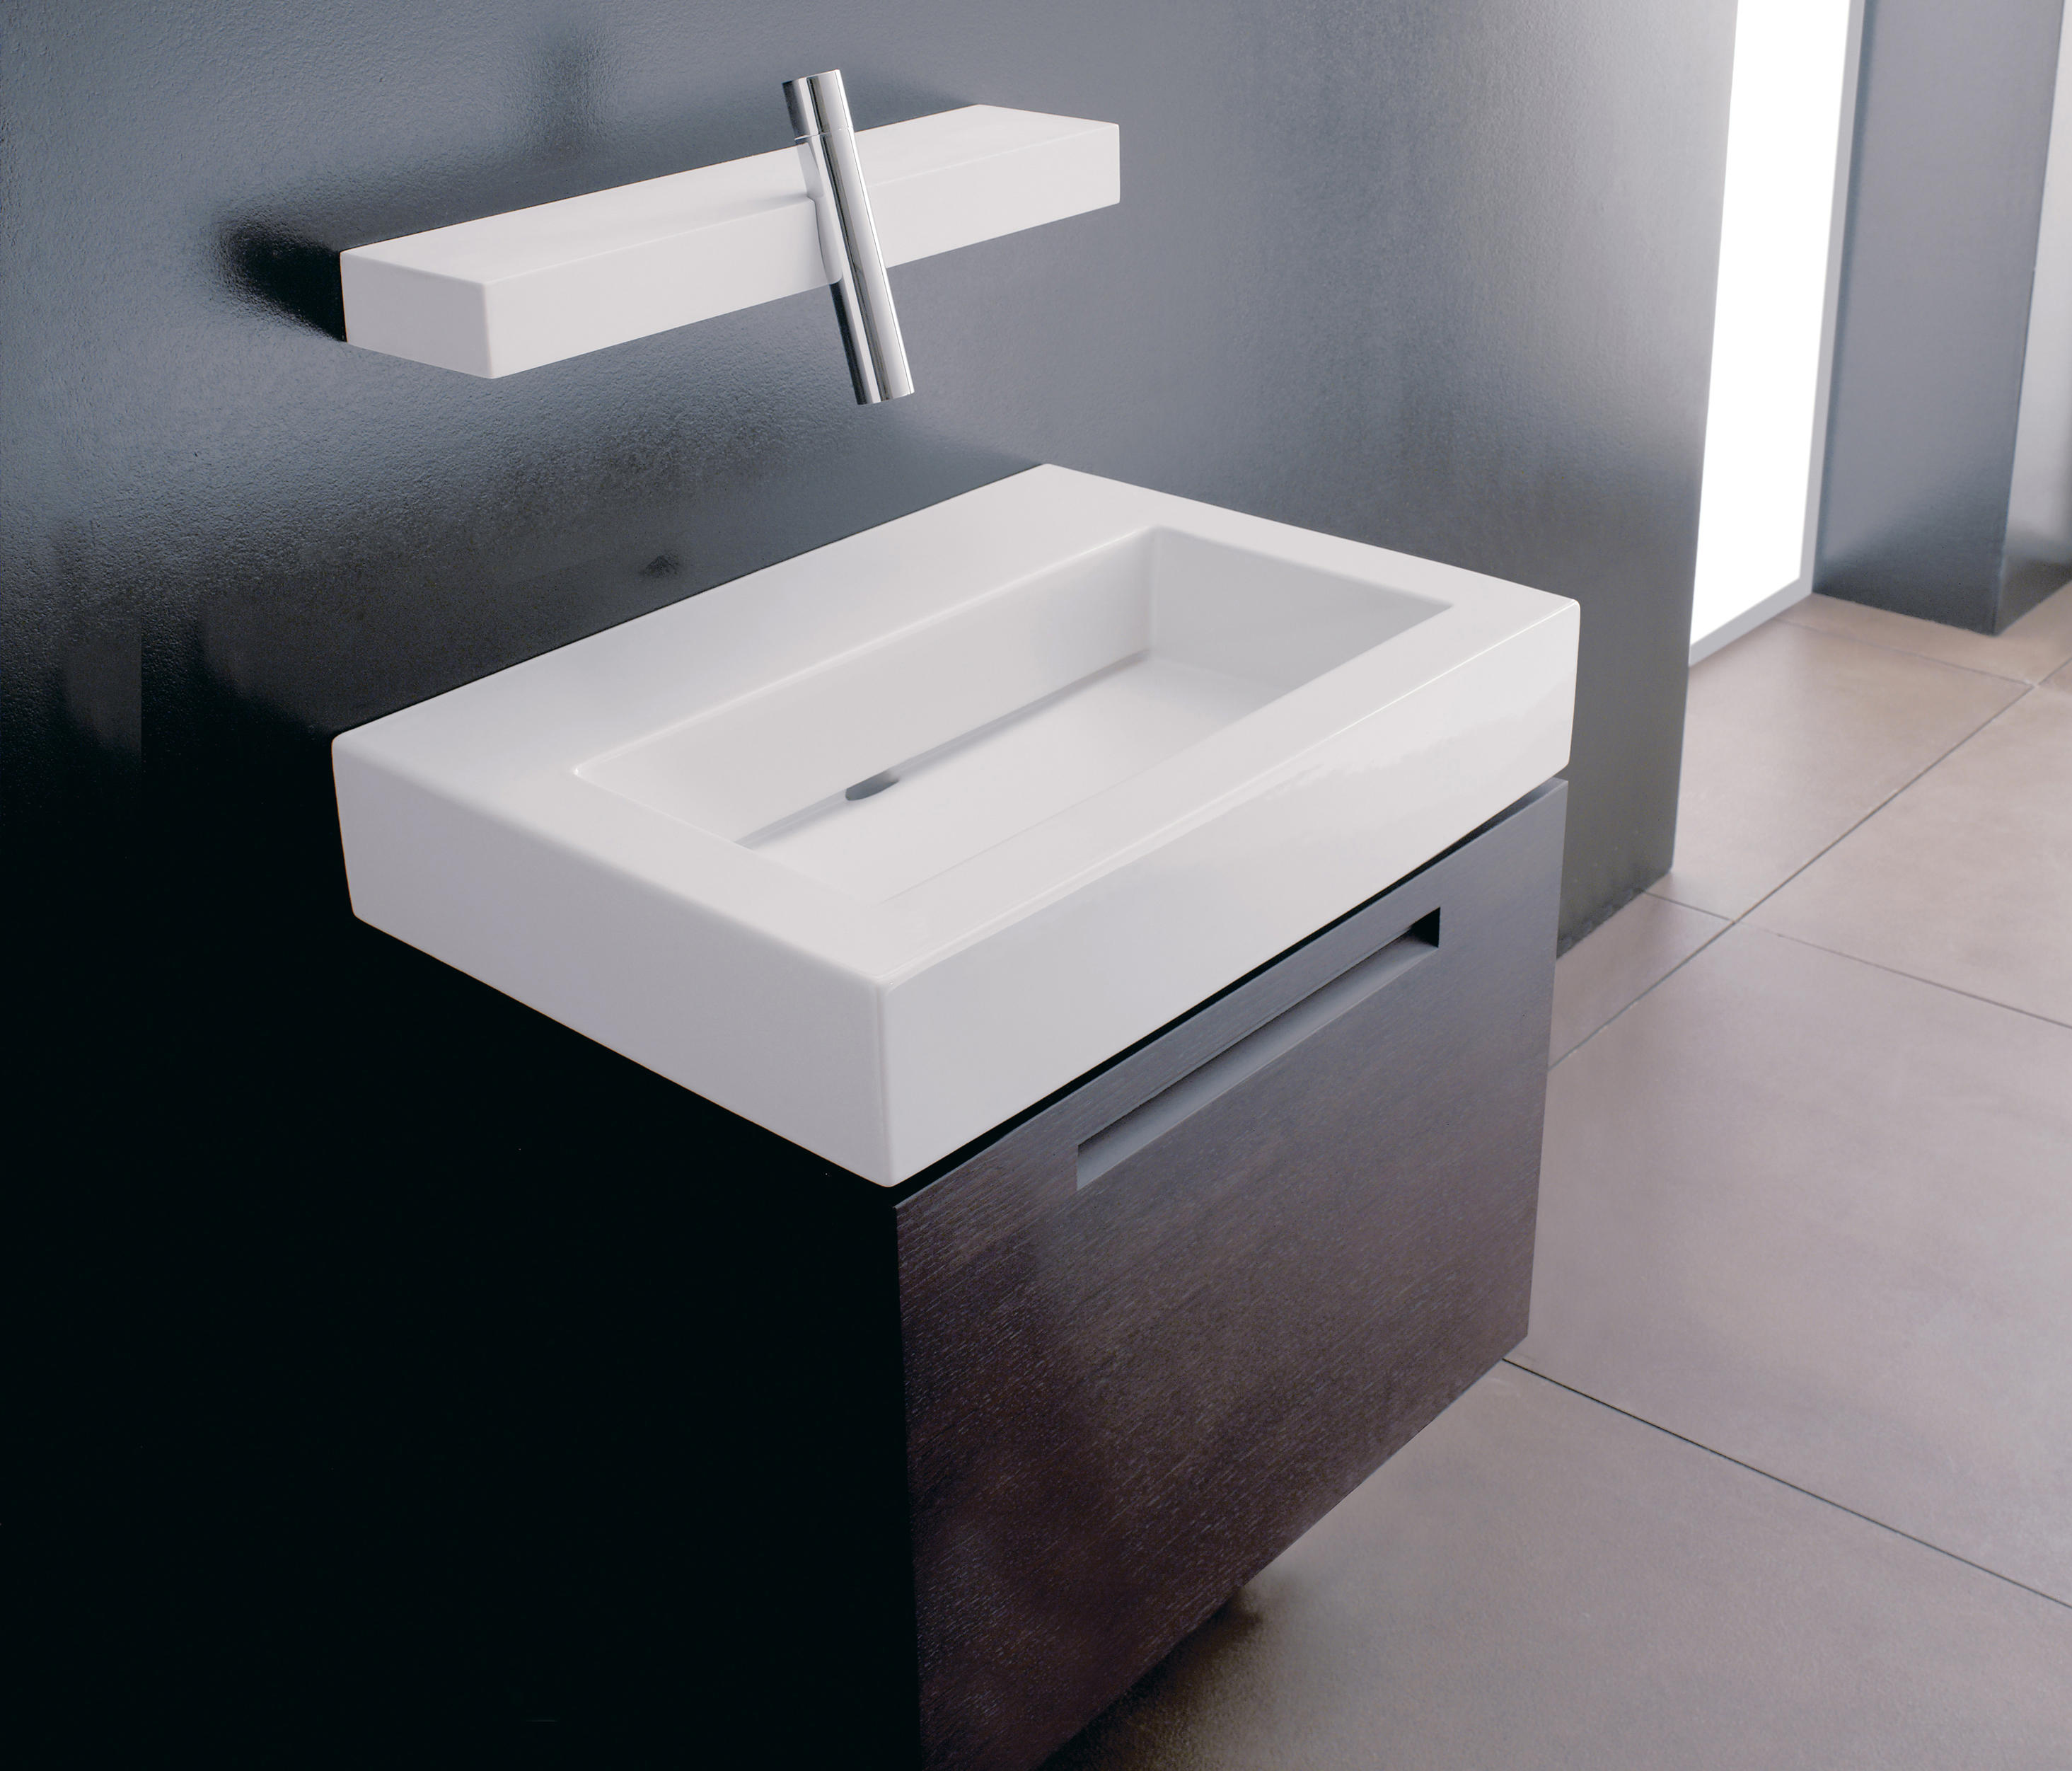 BLOK 5910 - Wash-basin taps from Rubinetterie Treemme | Architonic